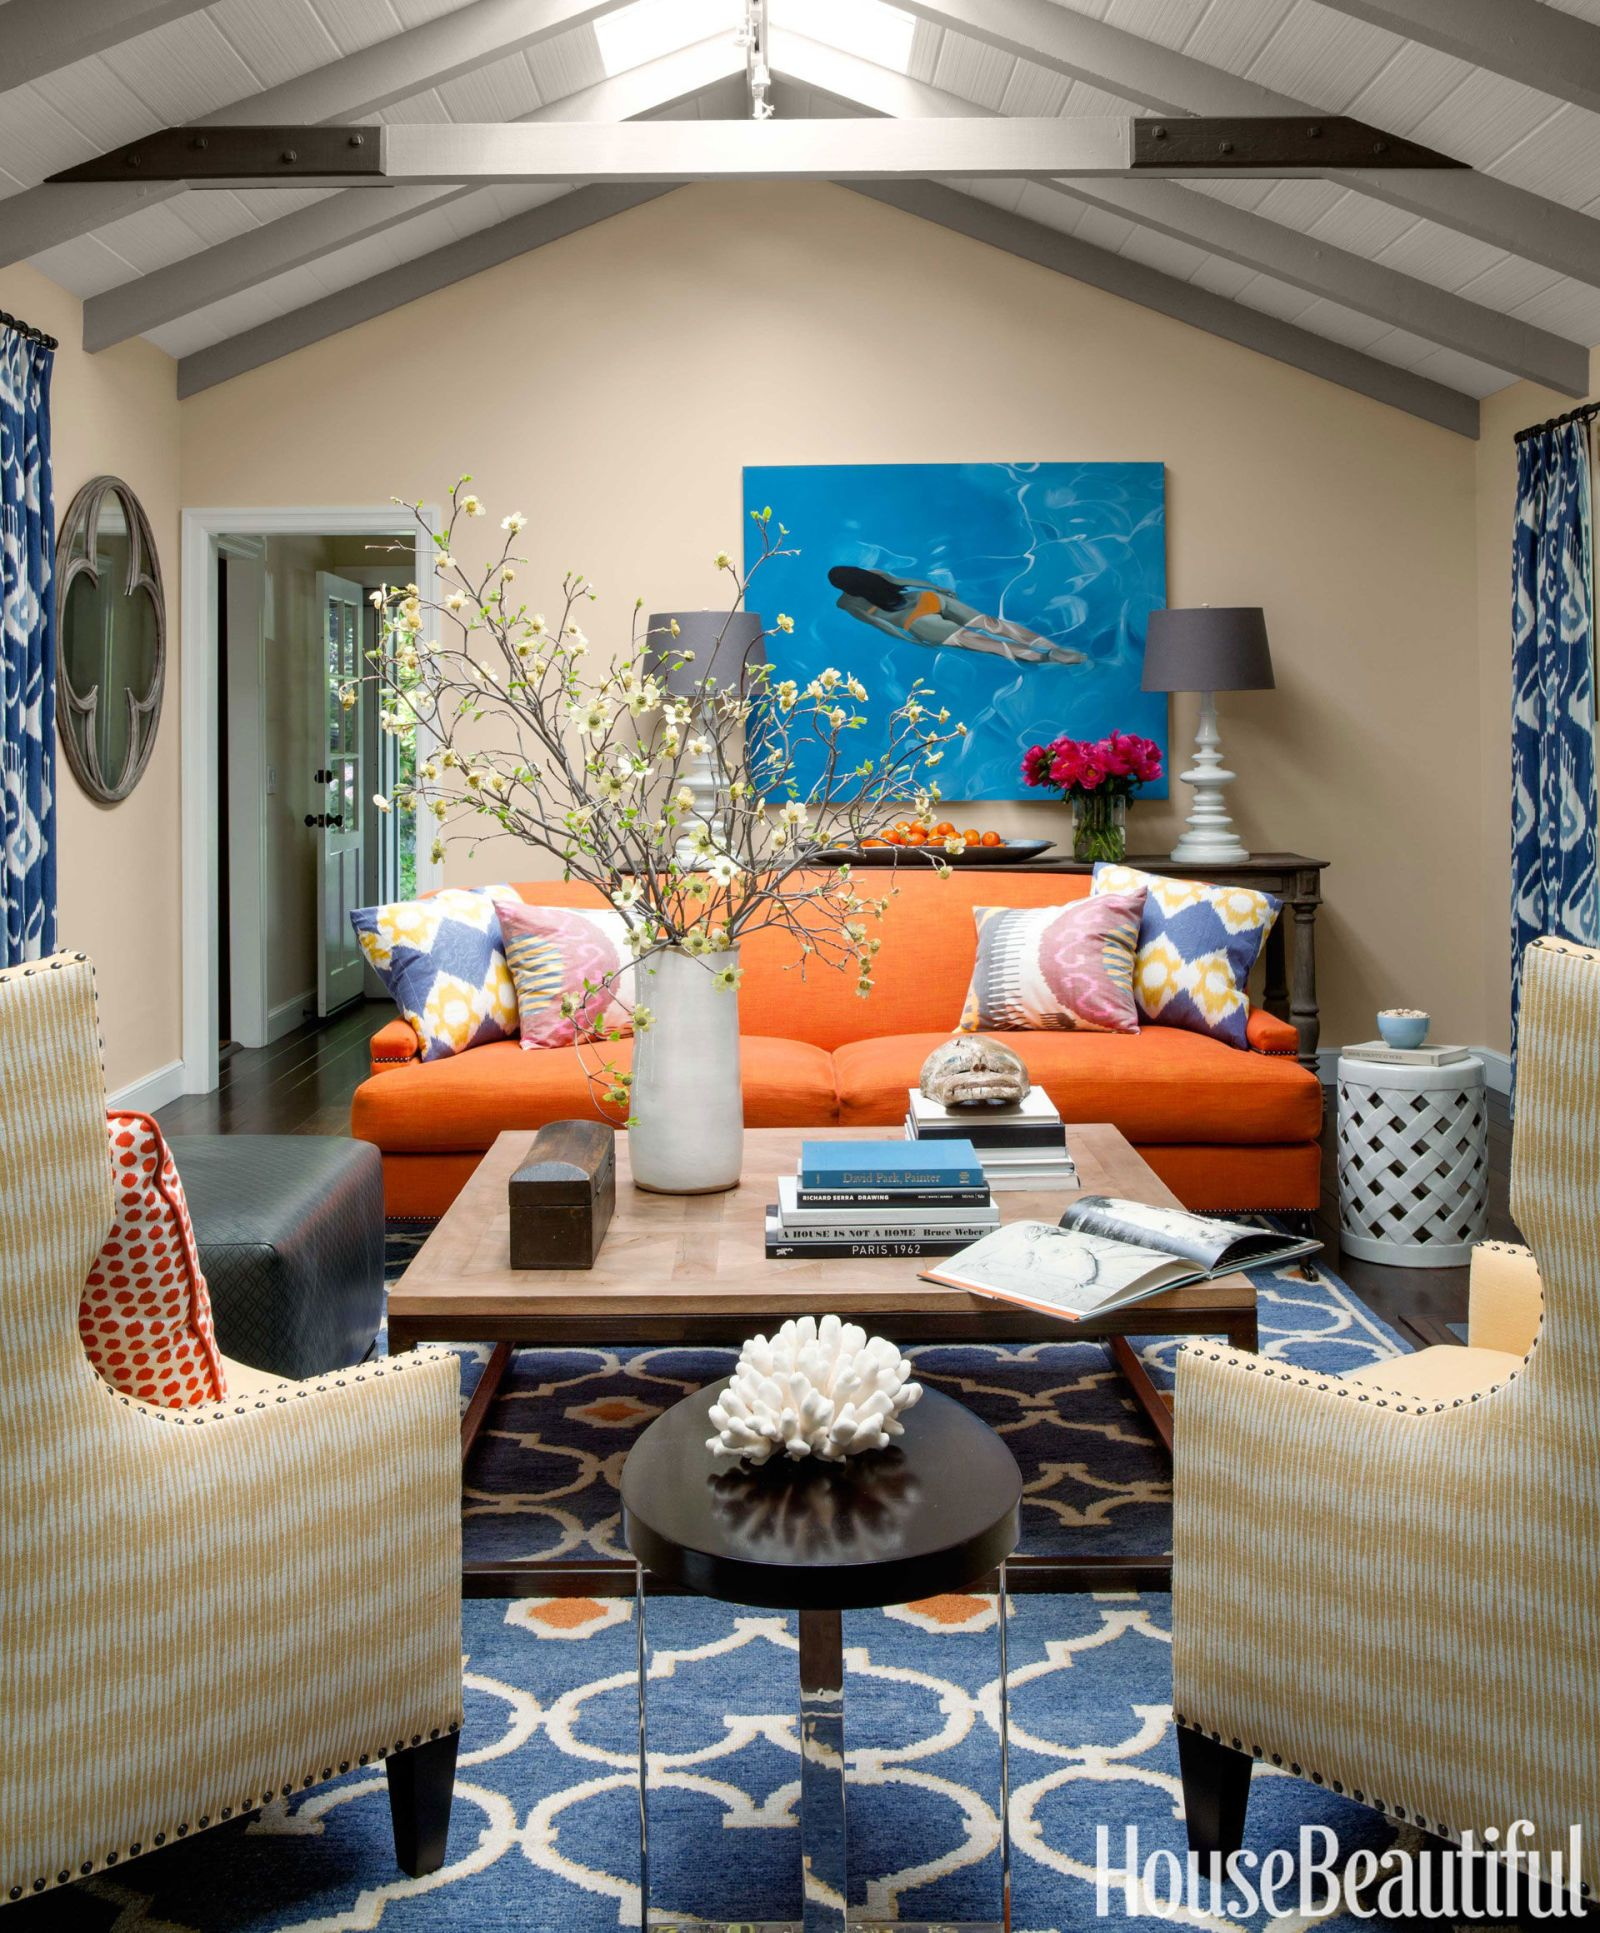 15 Lively Orange Living Room Design Ideas: A Happy California House With Colors Inspired By Nature